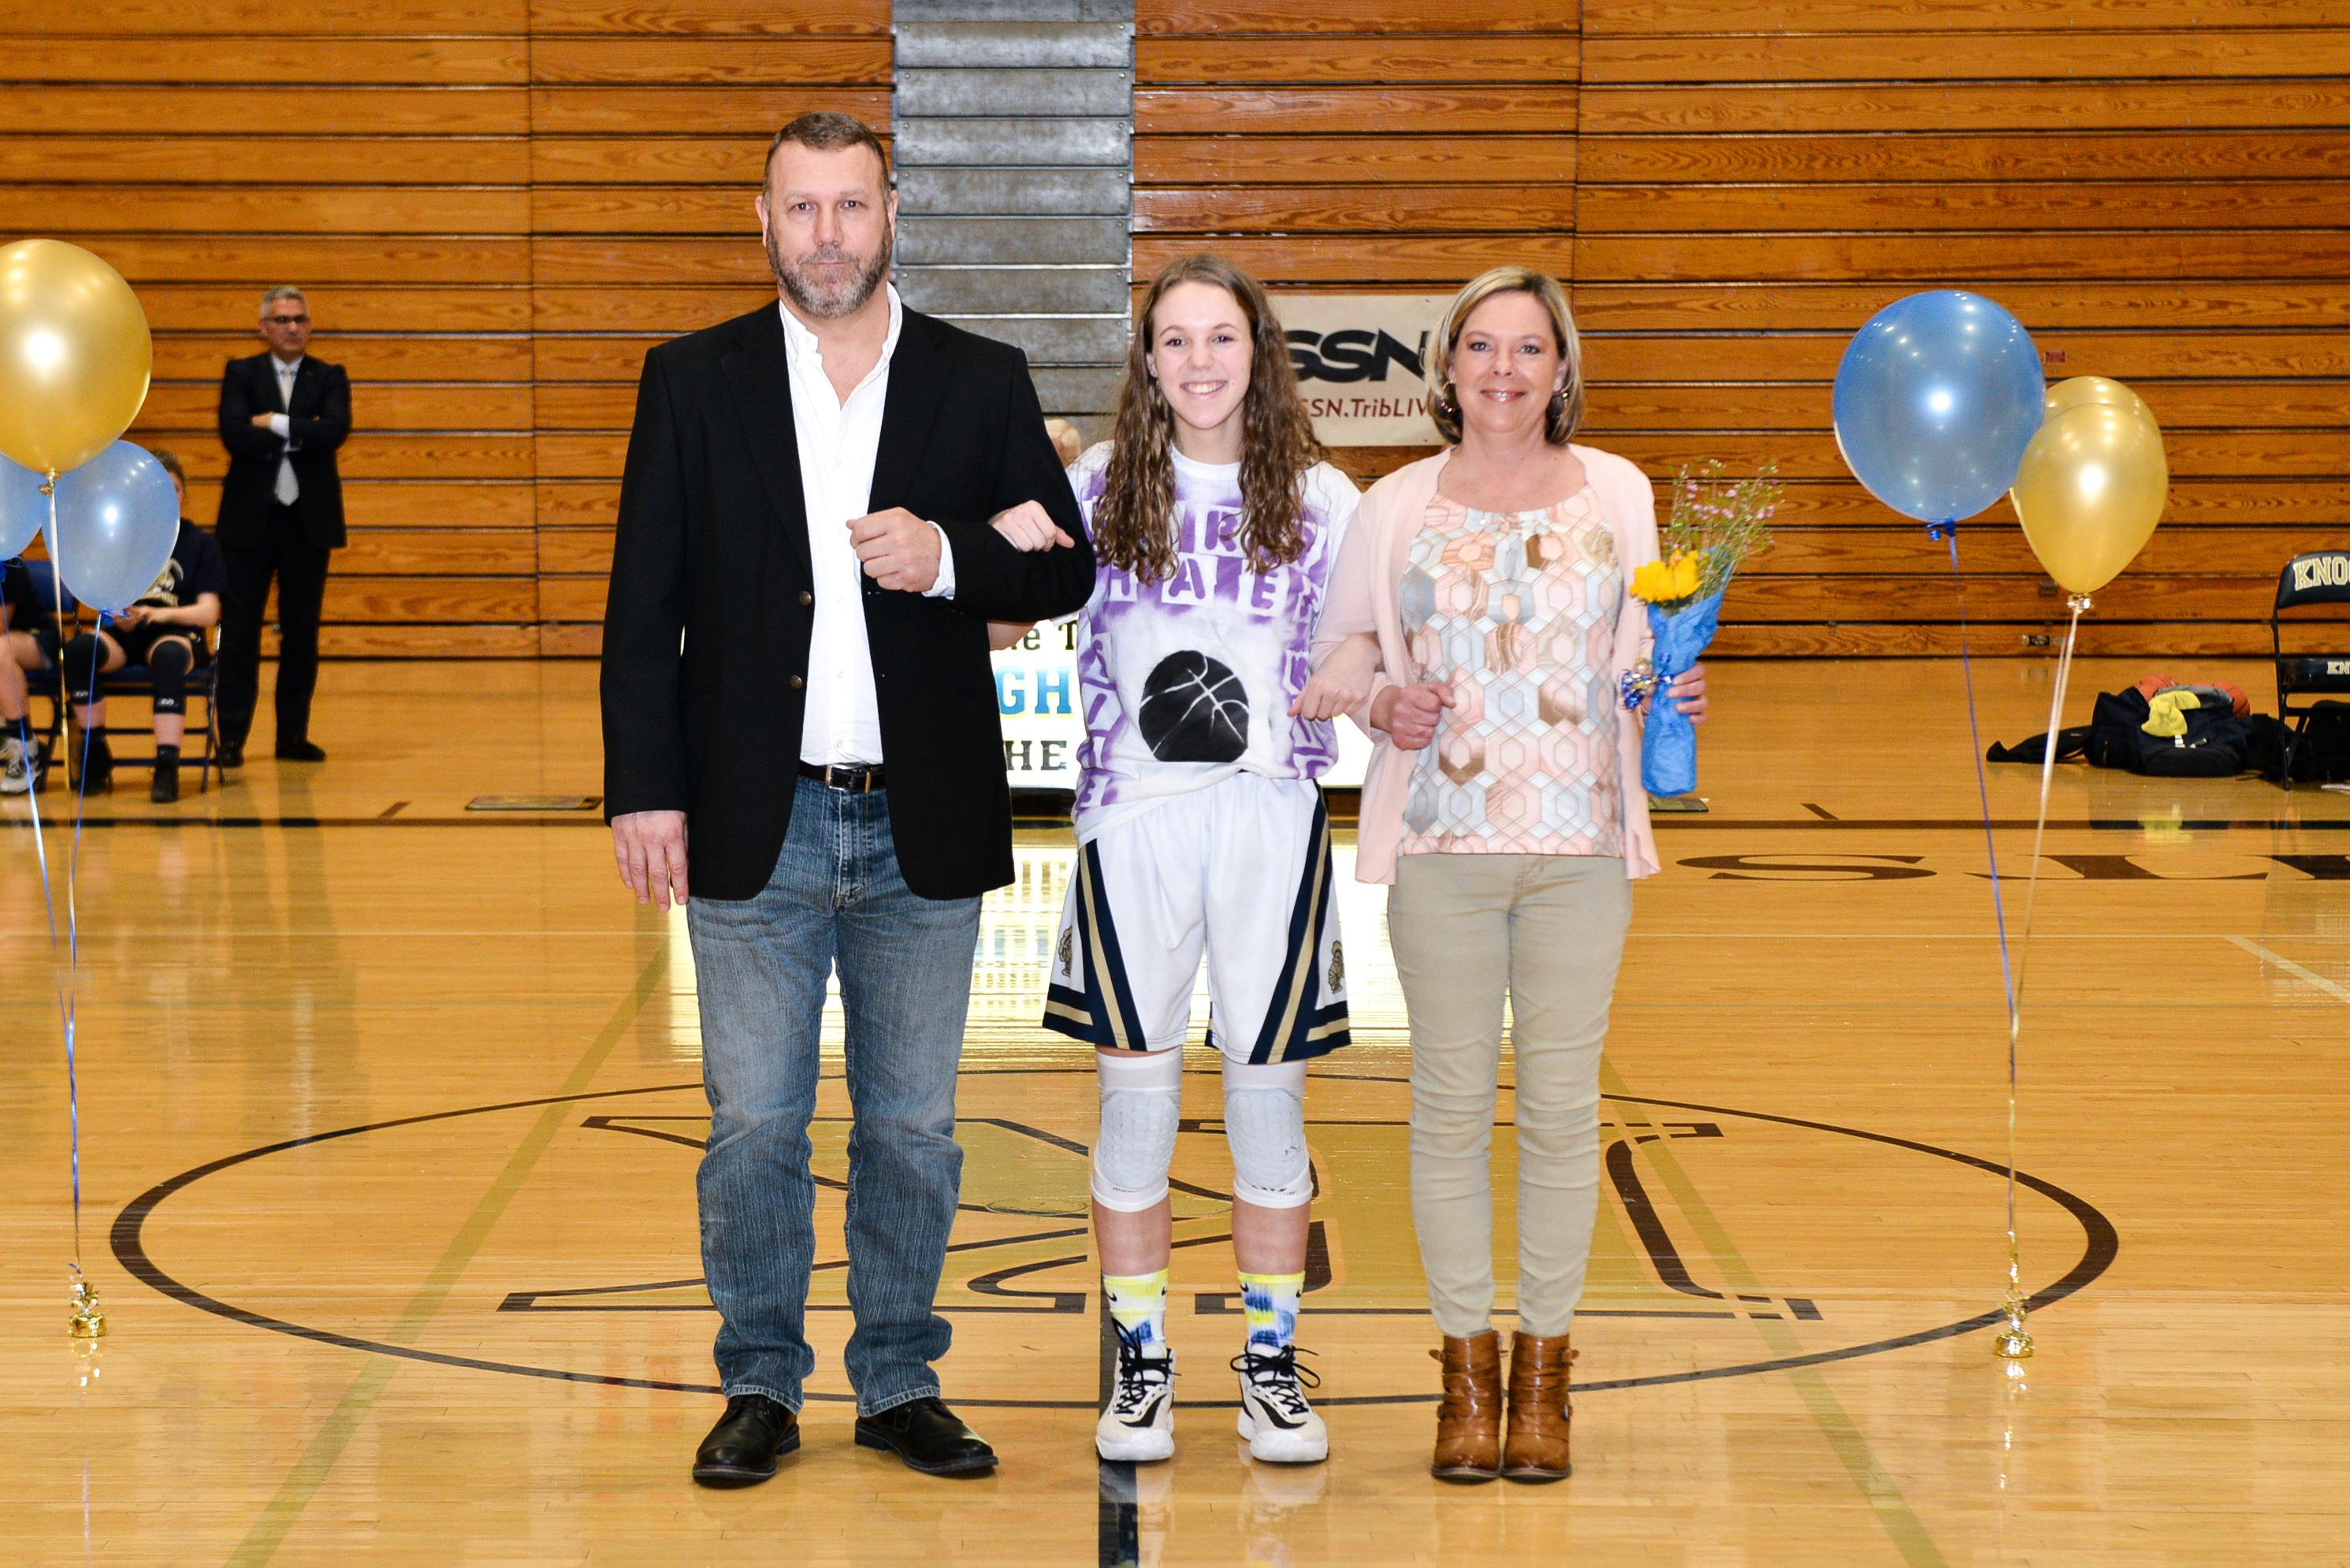 pic of Abbey Shearer and parents